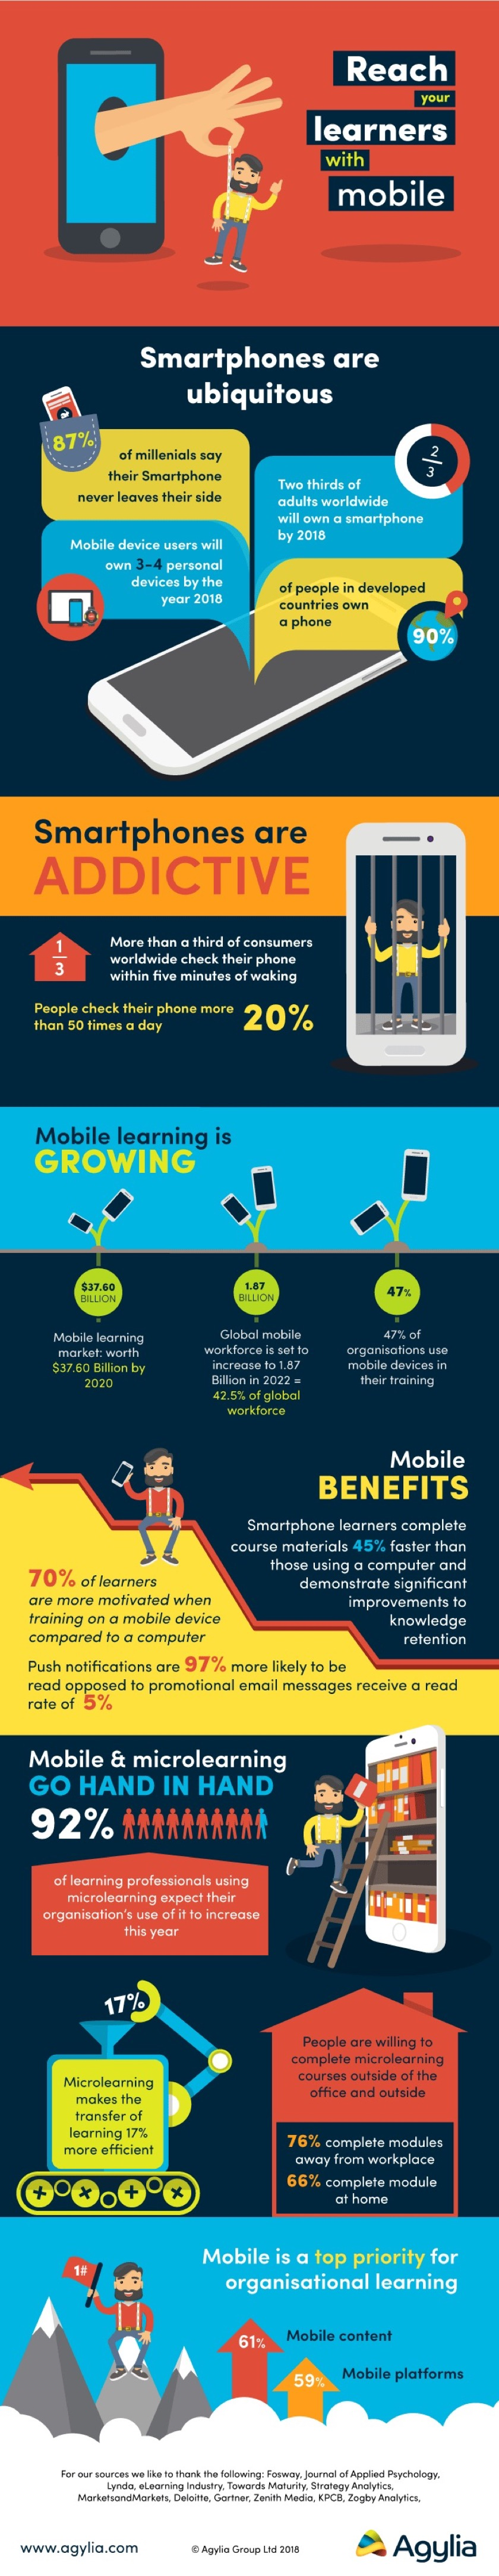 Reach mobile learners with smartphones #infographic